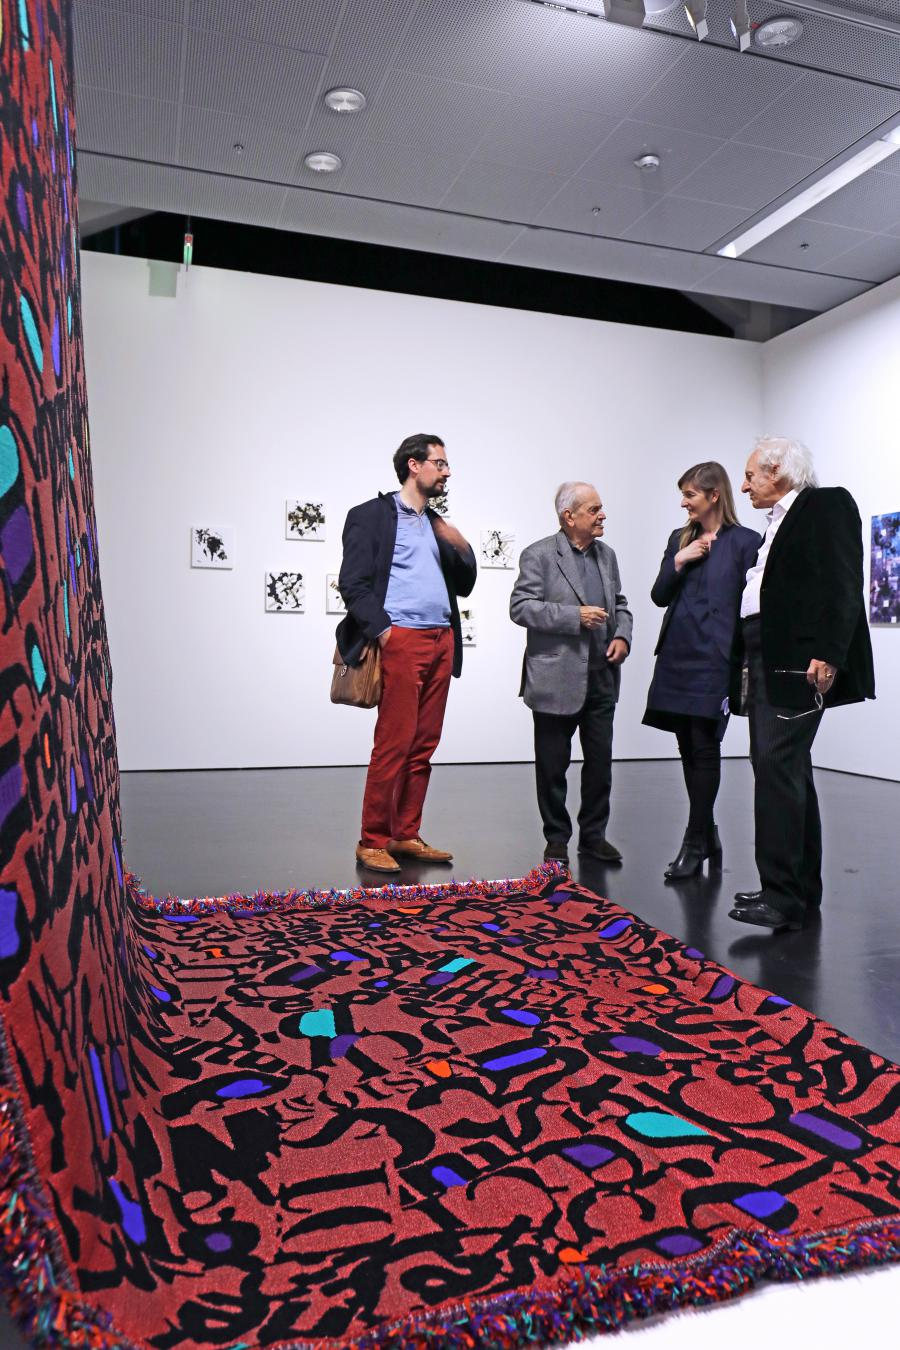 Four people are standing in front of an artwork which is a red carpet wih letters on it.